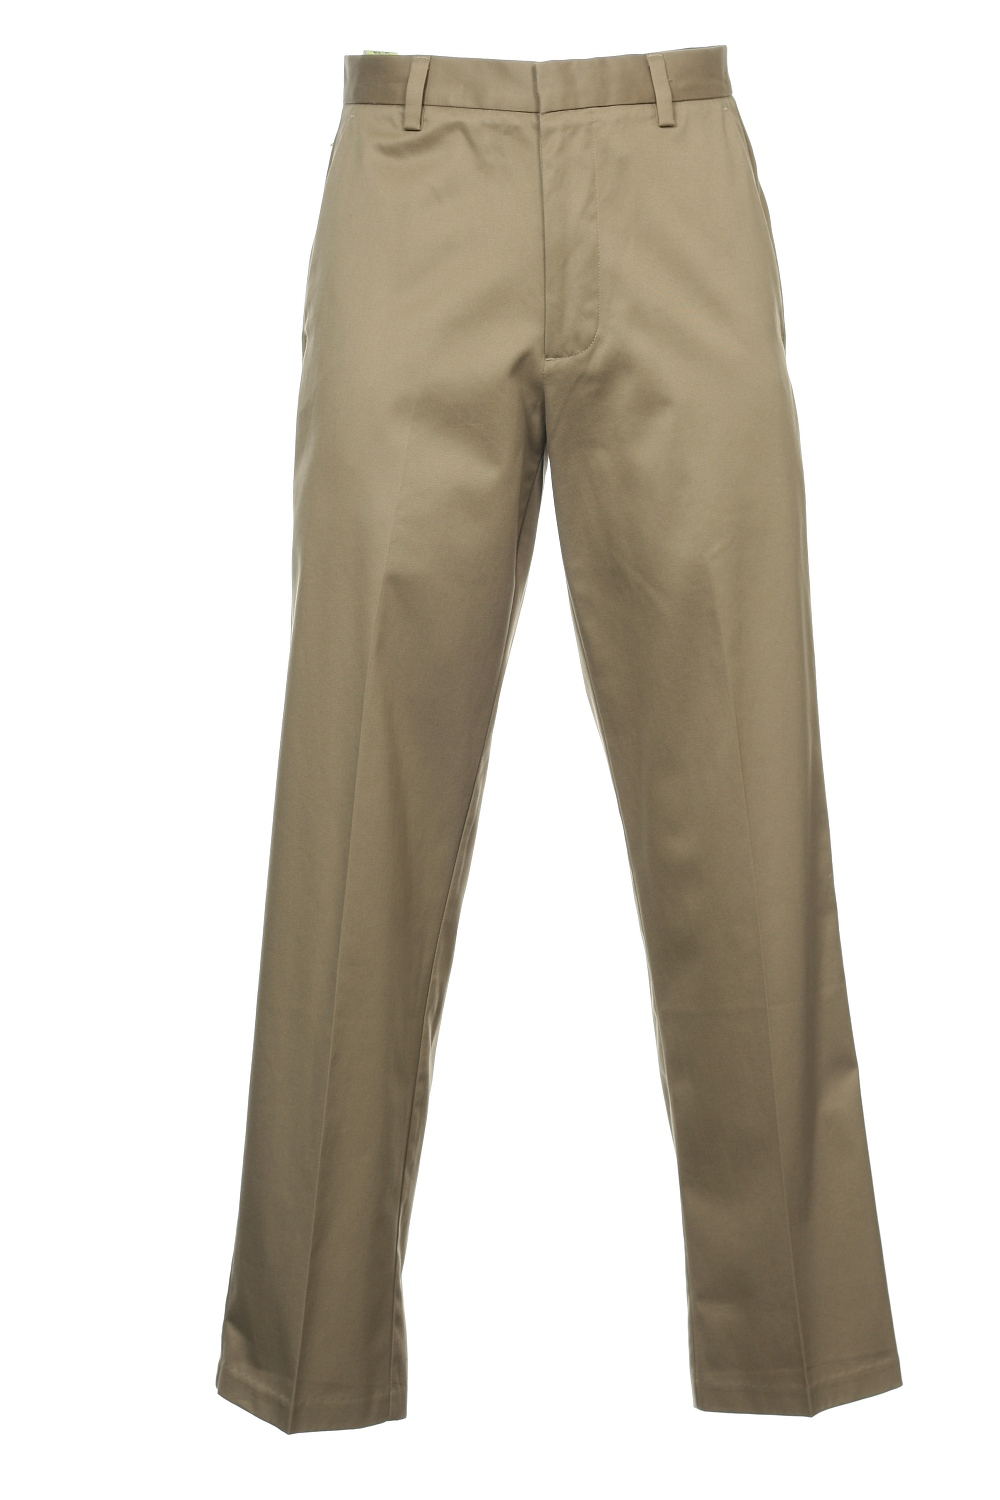 D4 by Dockers Men's Khaki Flat Front Pants by Dockers